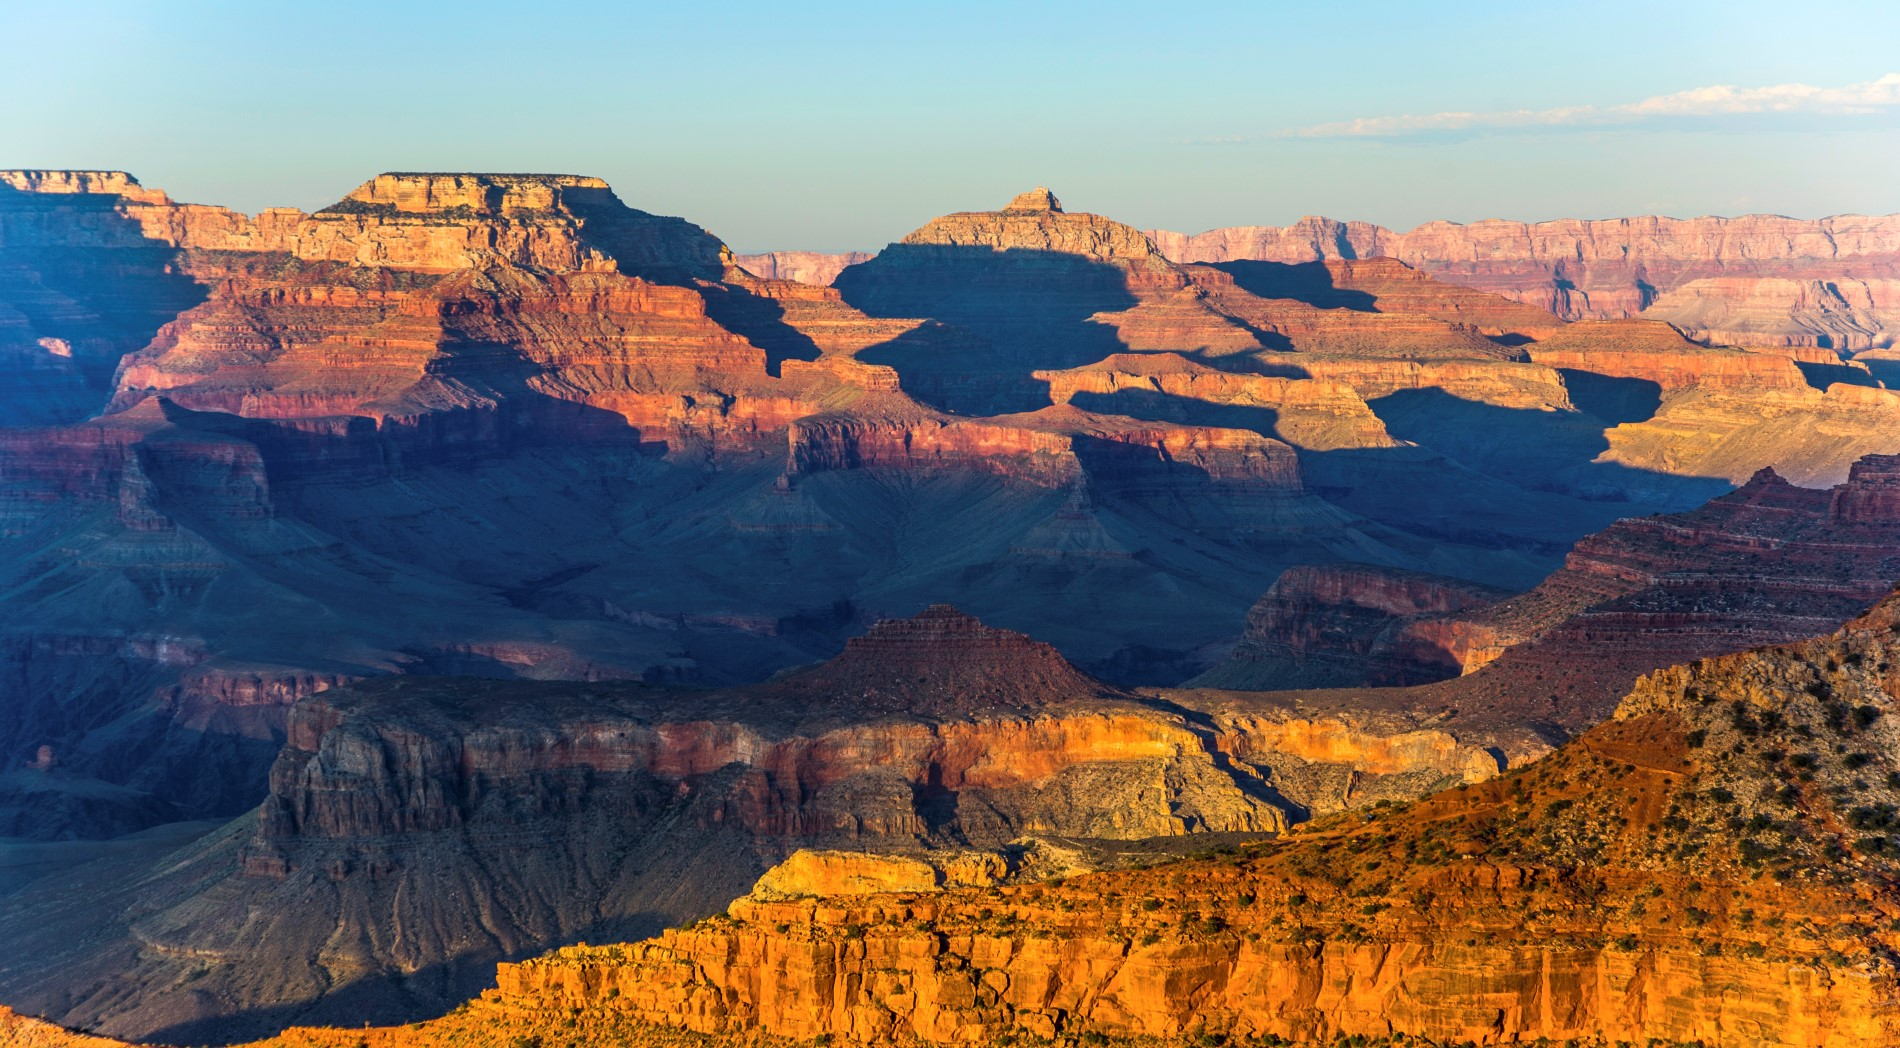 Grand Canyon at Mathers point in sunset light